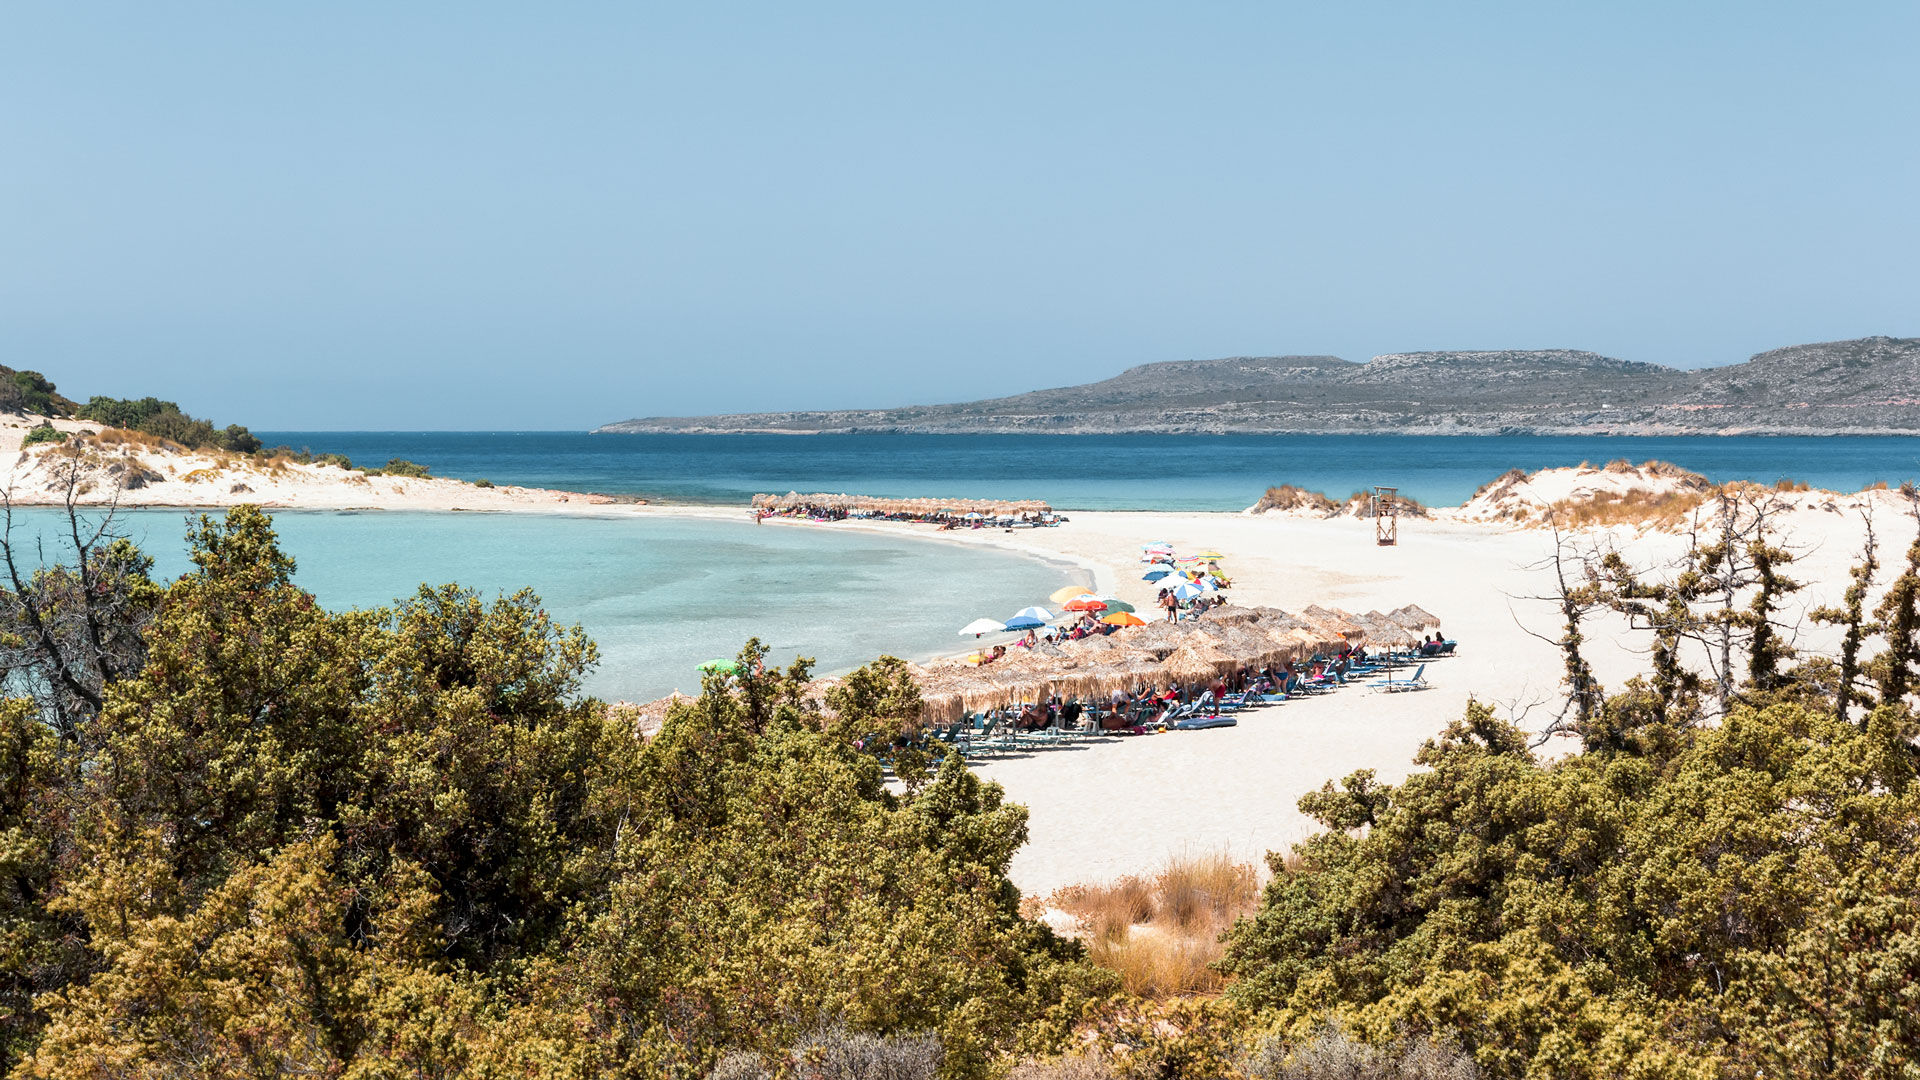 When you've got not one but two stretches of paradise to choose from, you know you've found a bucket list beach-Simos, Elafonisos